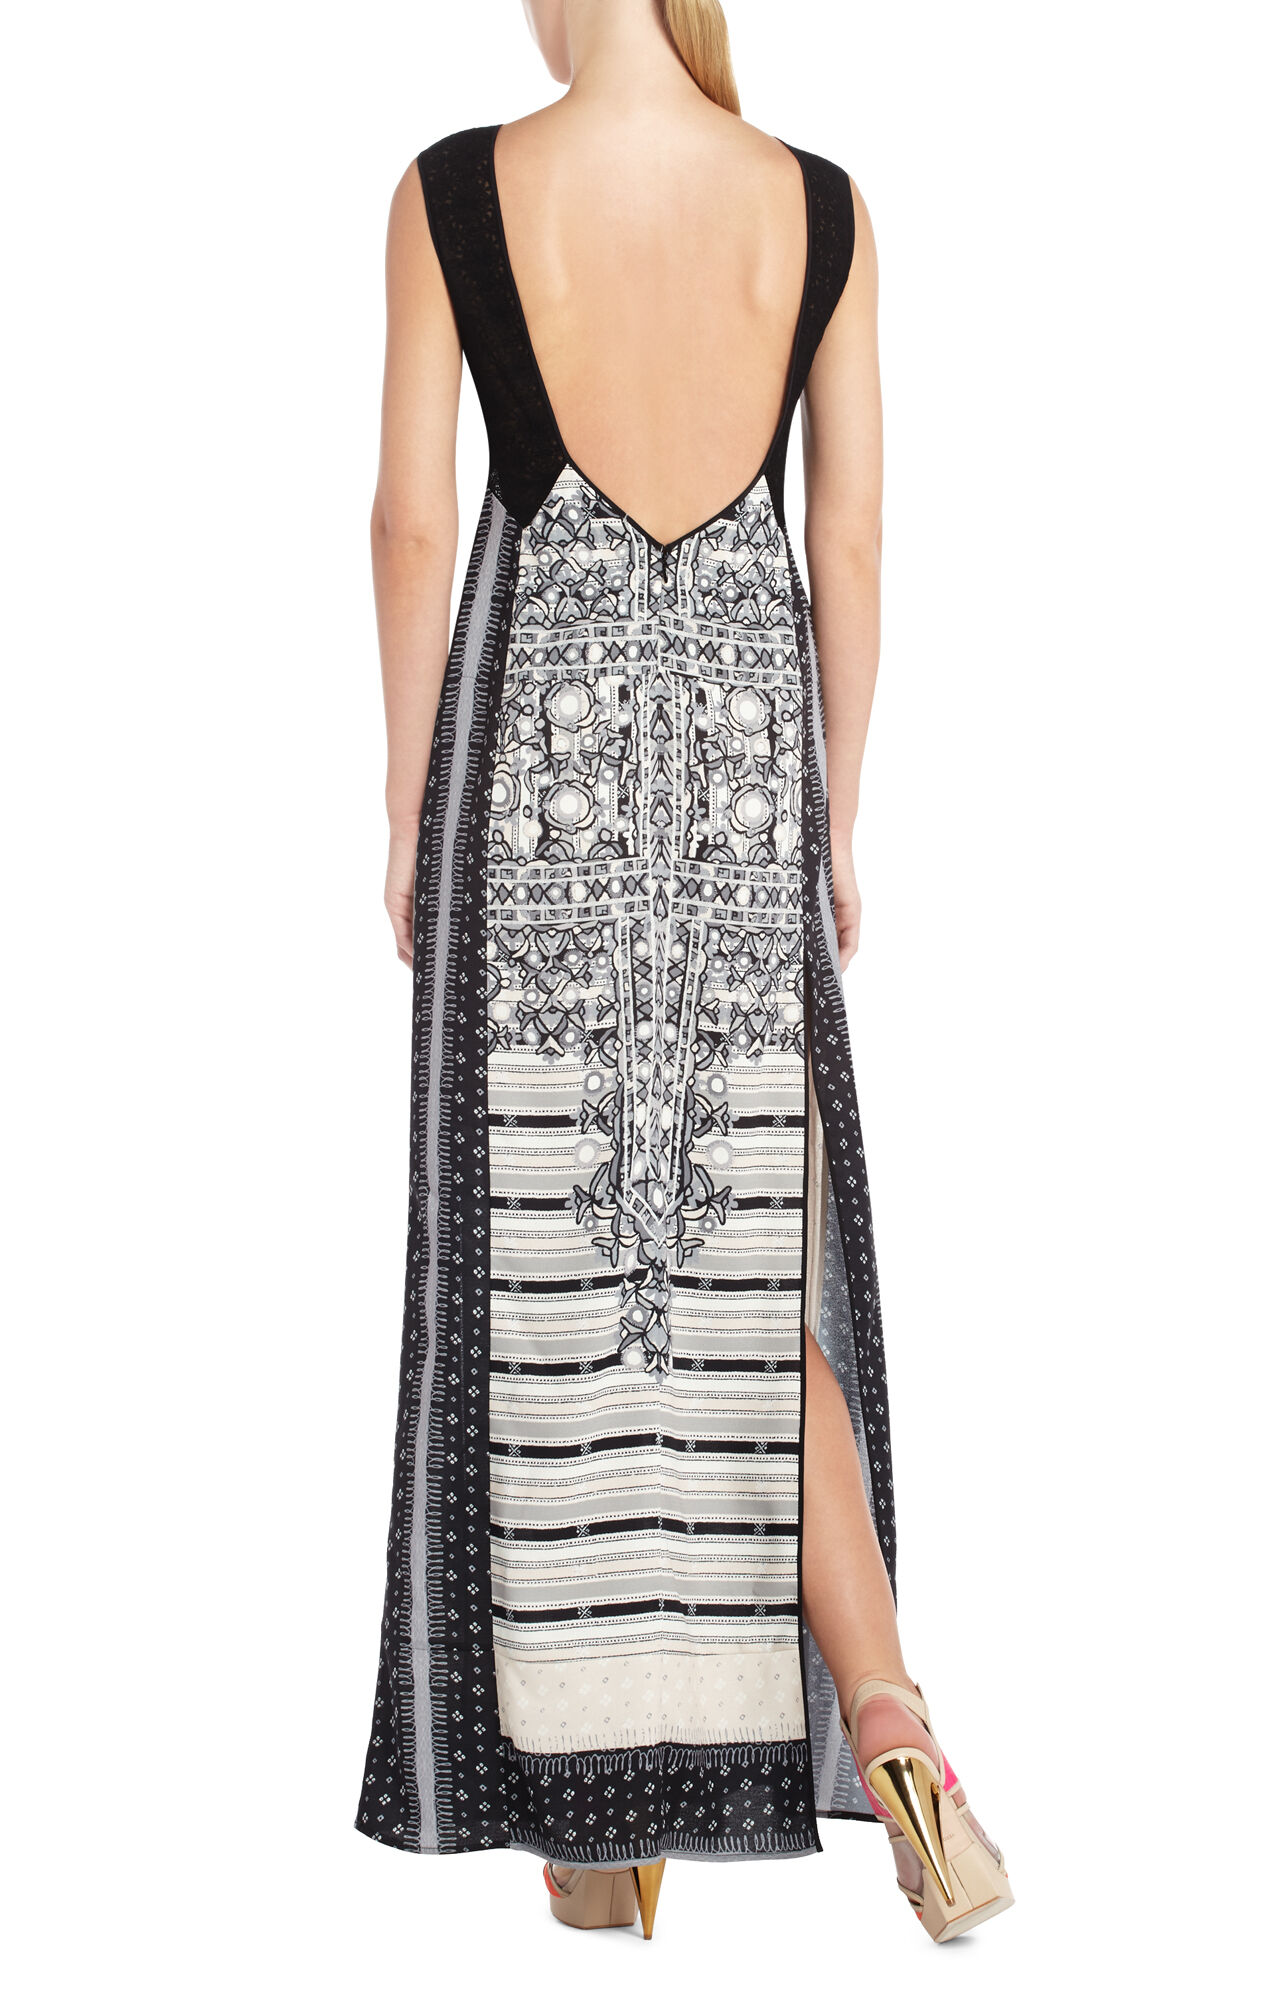 Runway Ace Fringe-Trim Dress